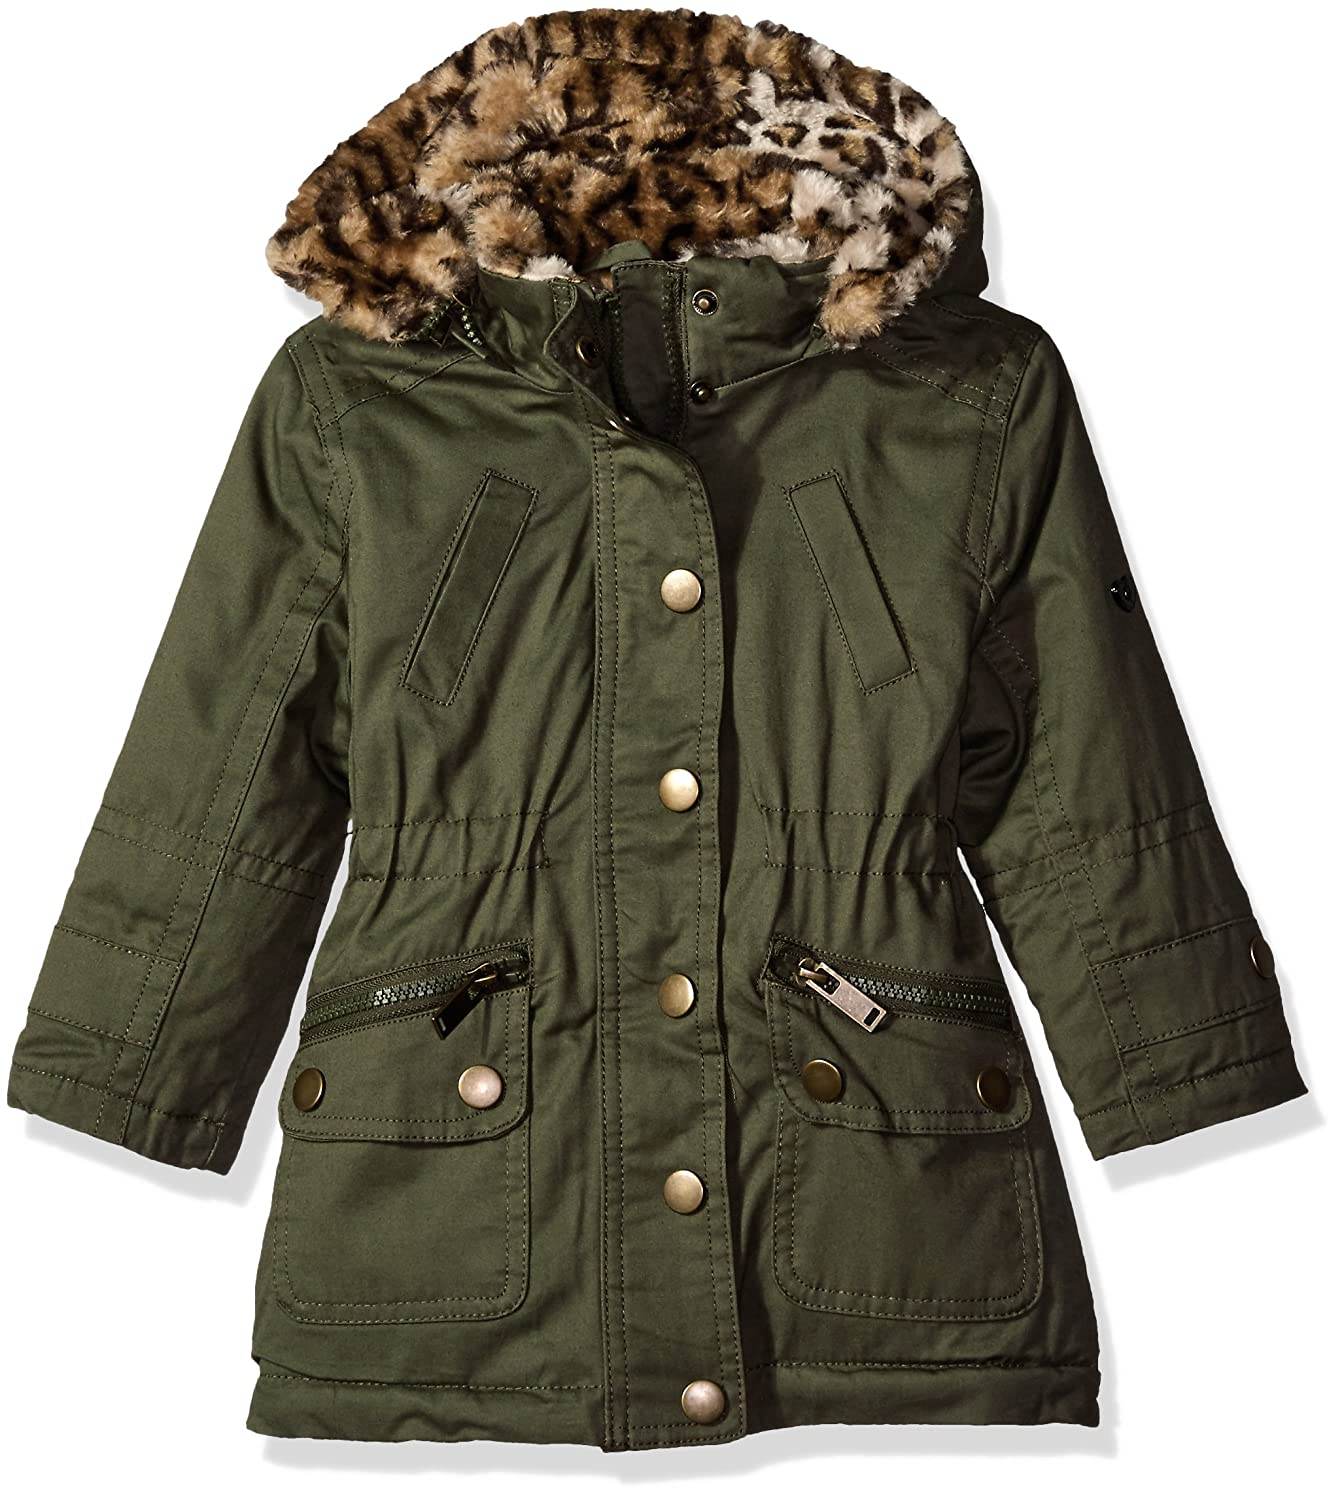 Urban Republic Girls' Cotton Twill Anorak Jacket with Faux Fur Hood 5401